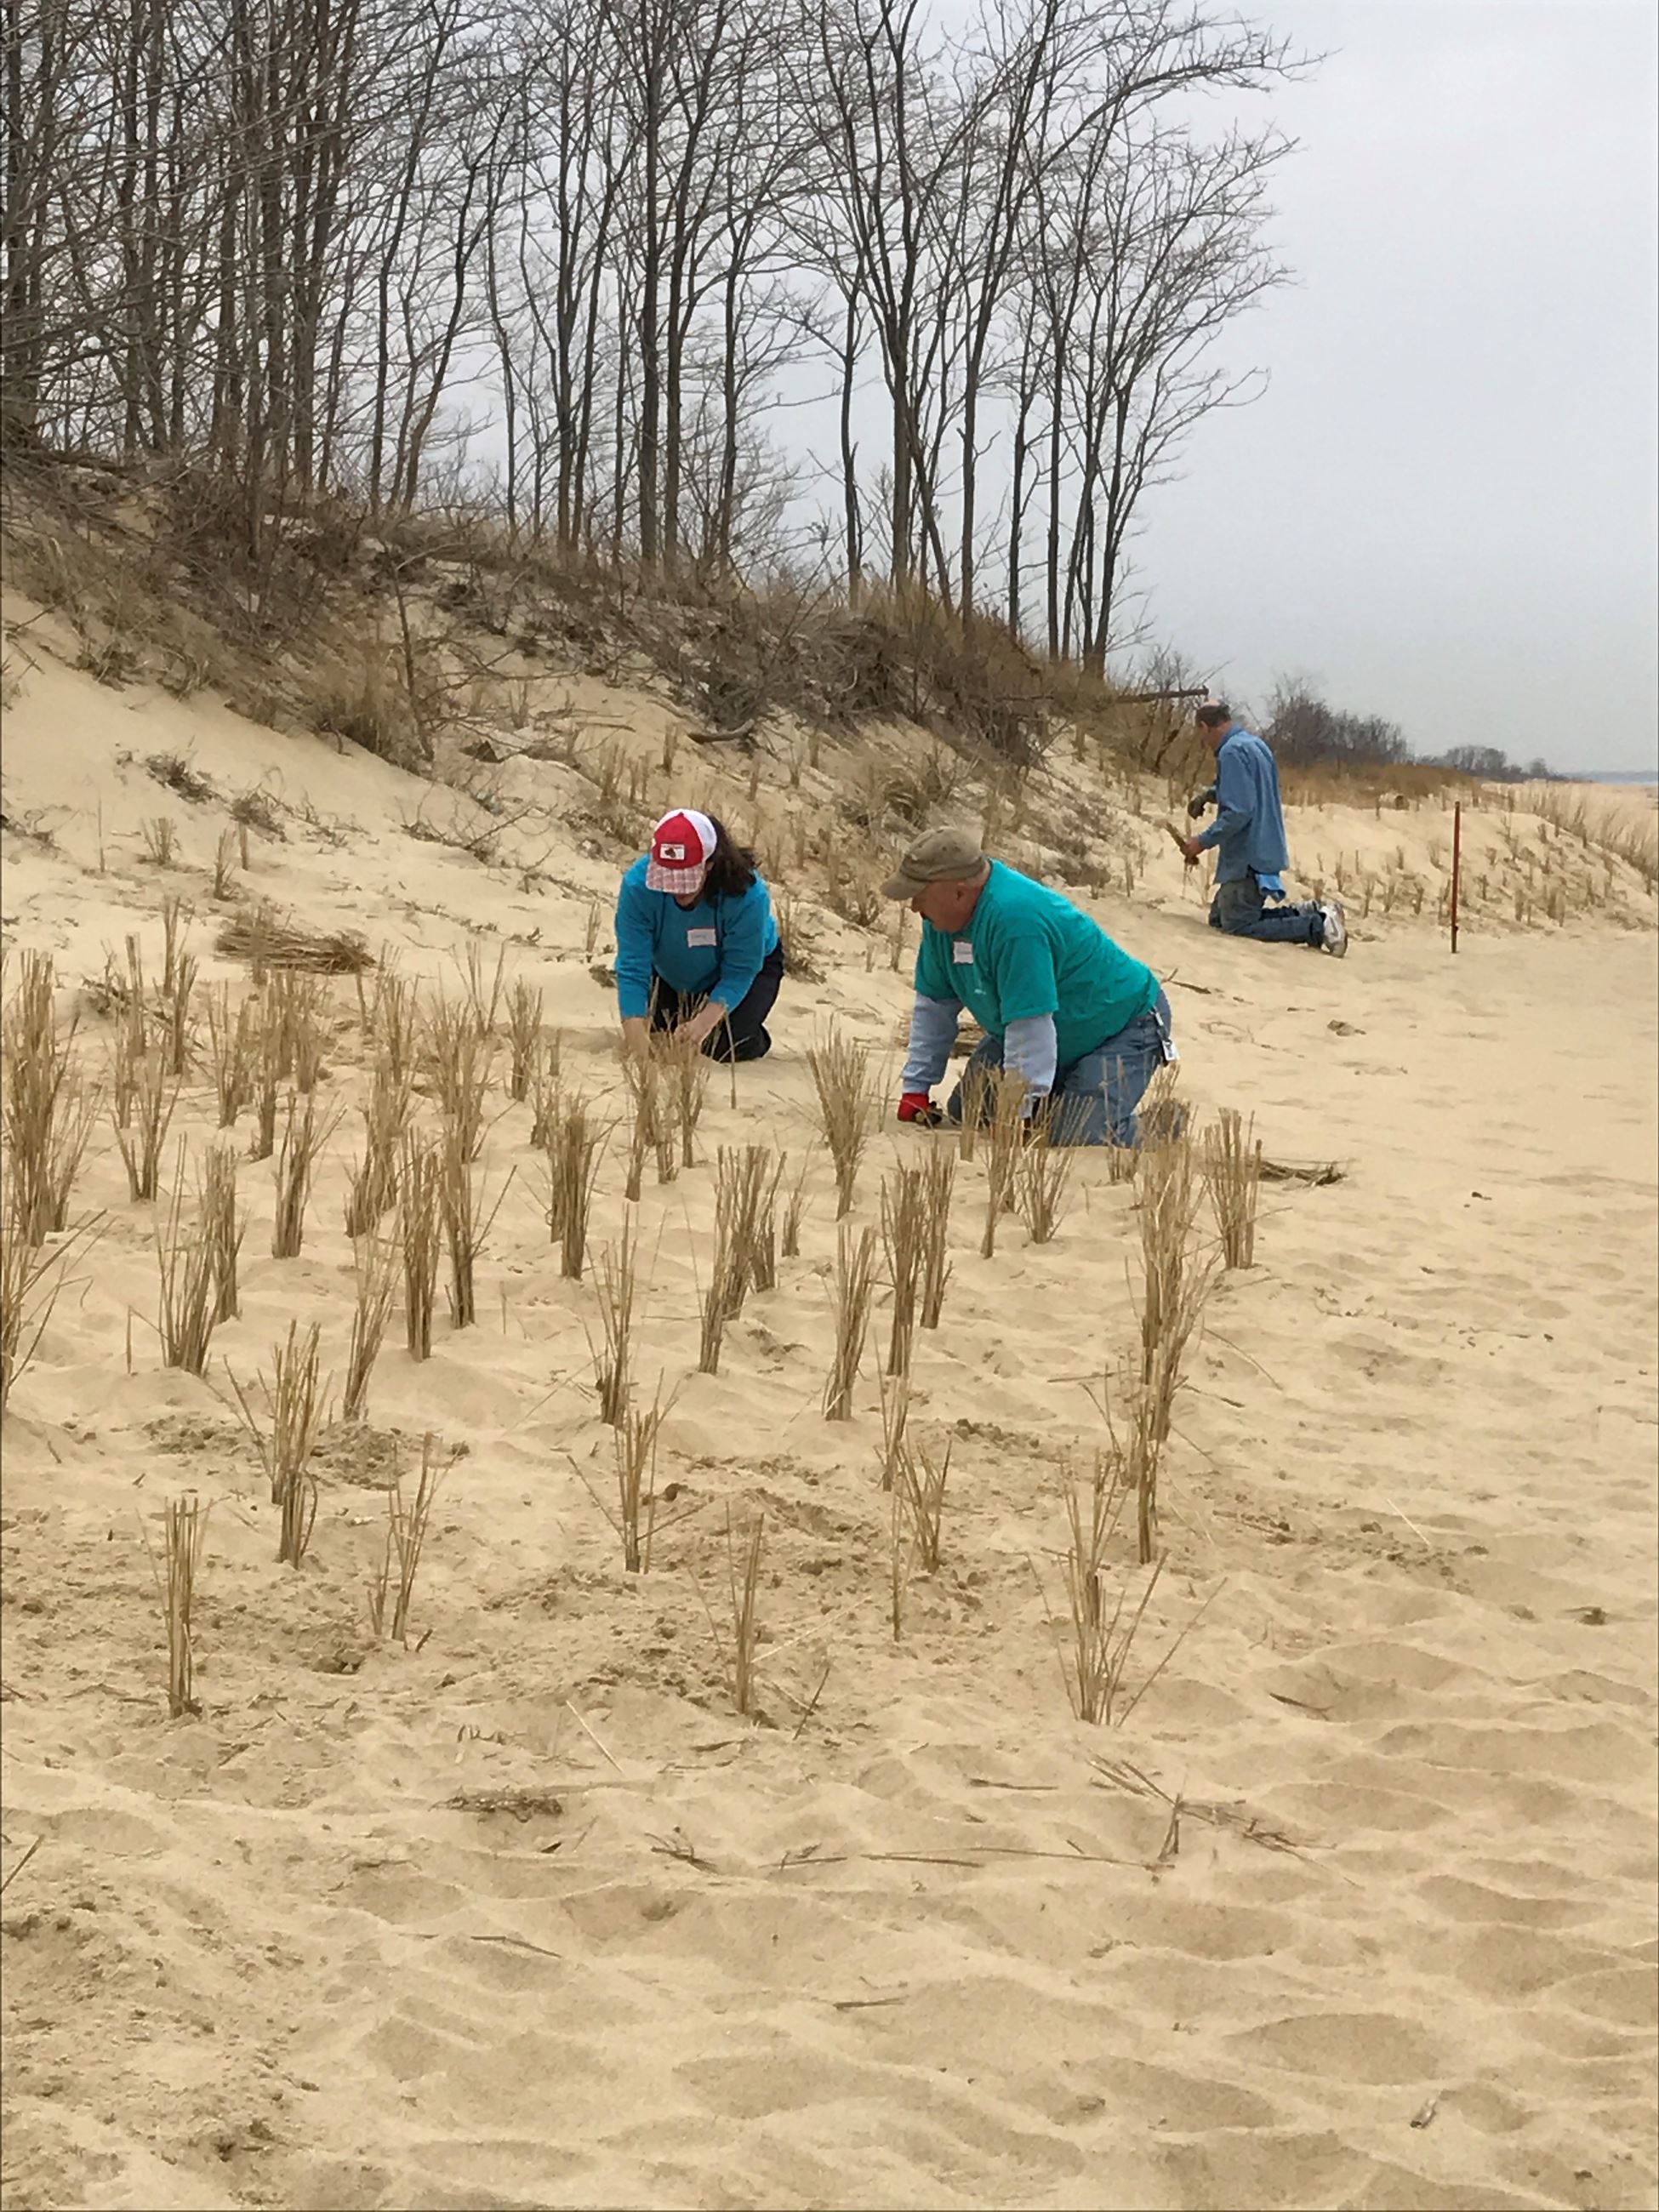 Archived Ideal Beach Improvements Underway